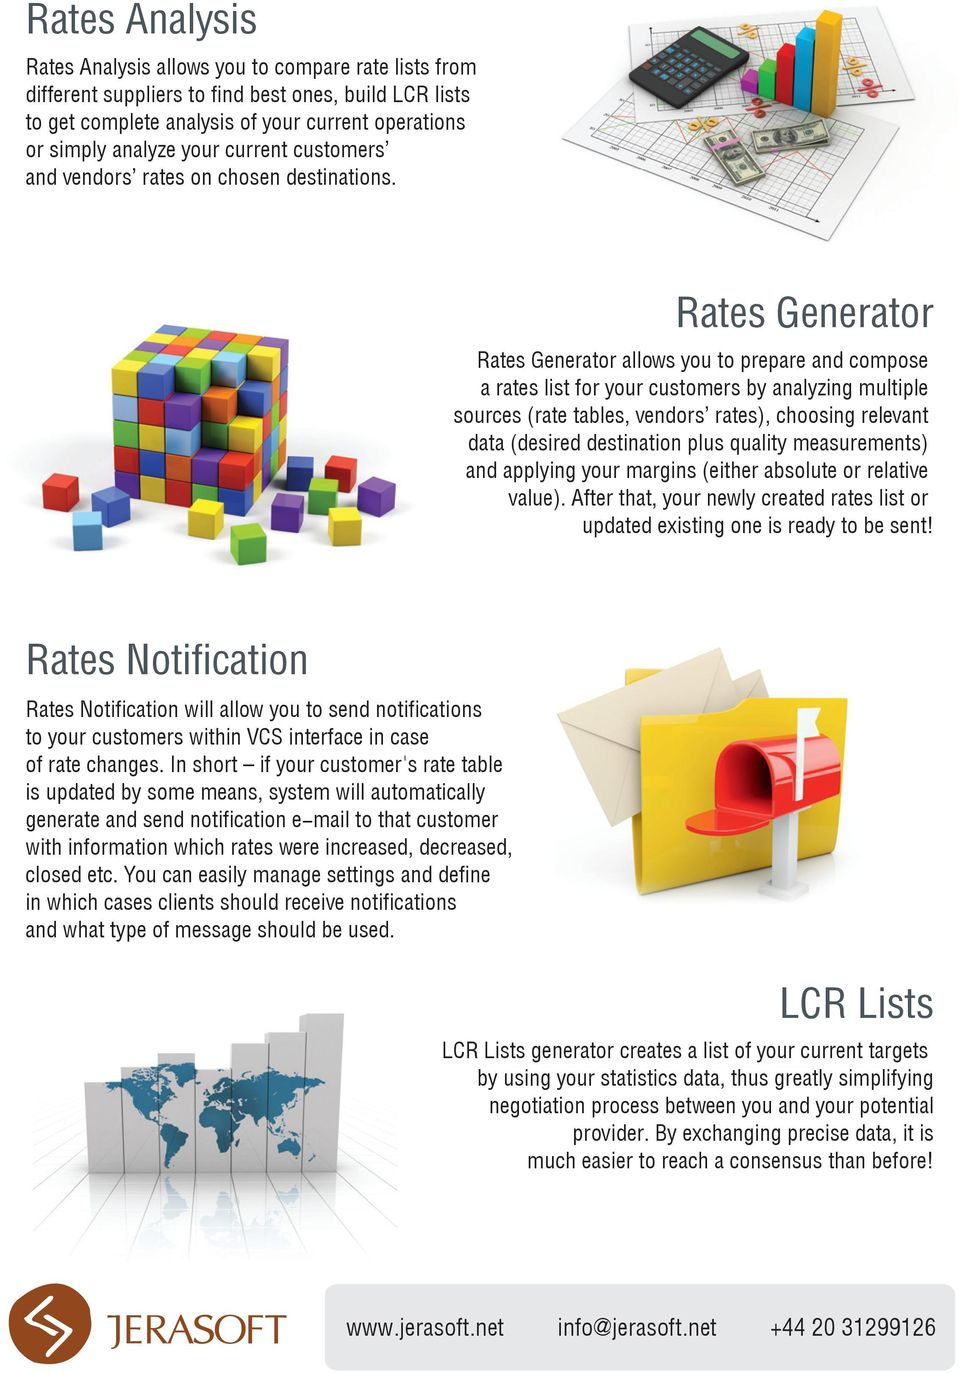 Rates Generator Rates Generator allows you to prepare and compose a rates list for your customers by analyzing multiple sources (rate tables, vendors rates), choosing relevant data (desired